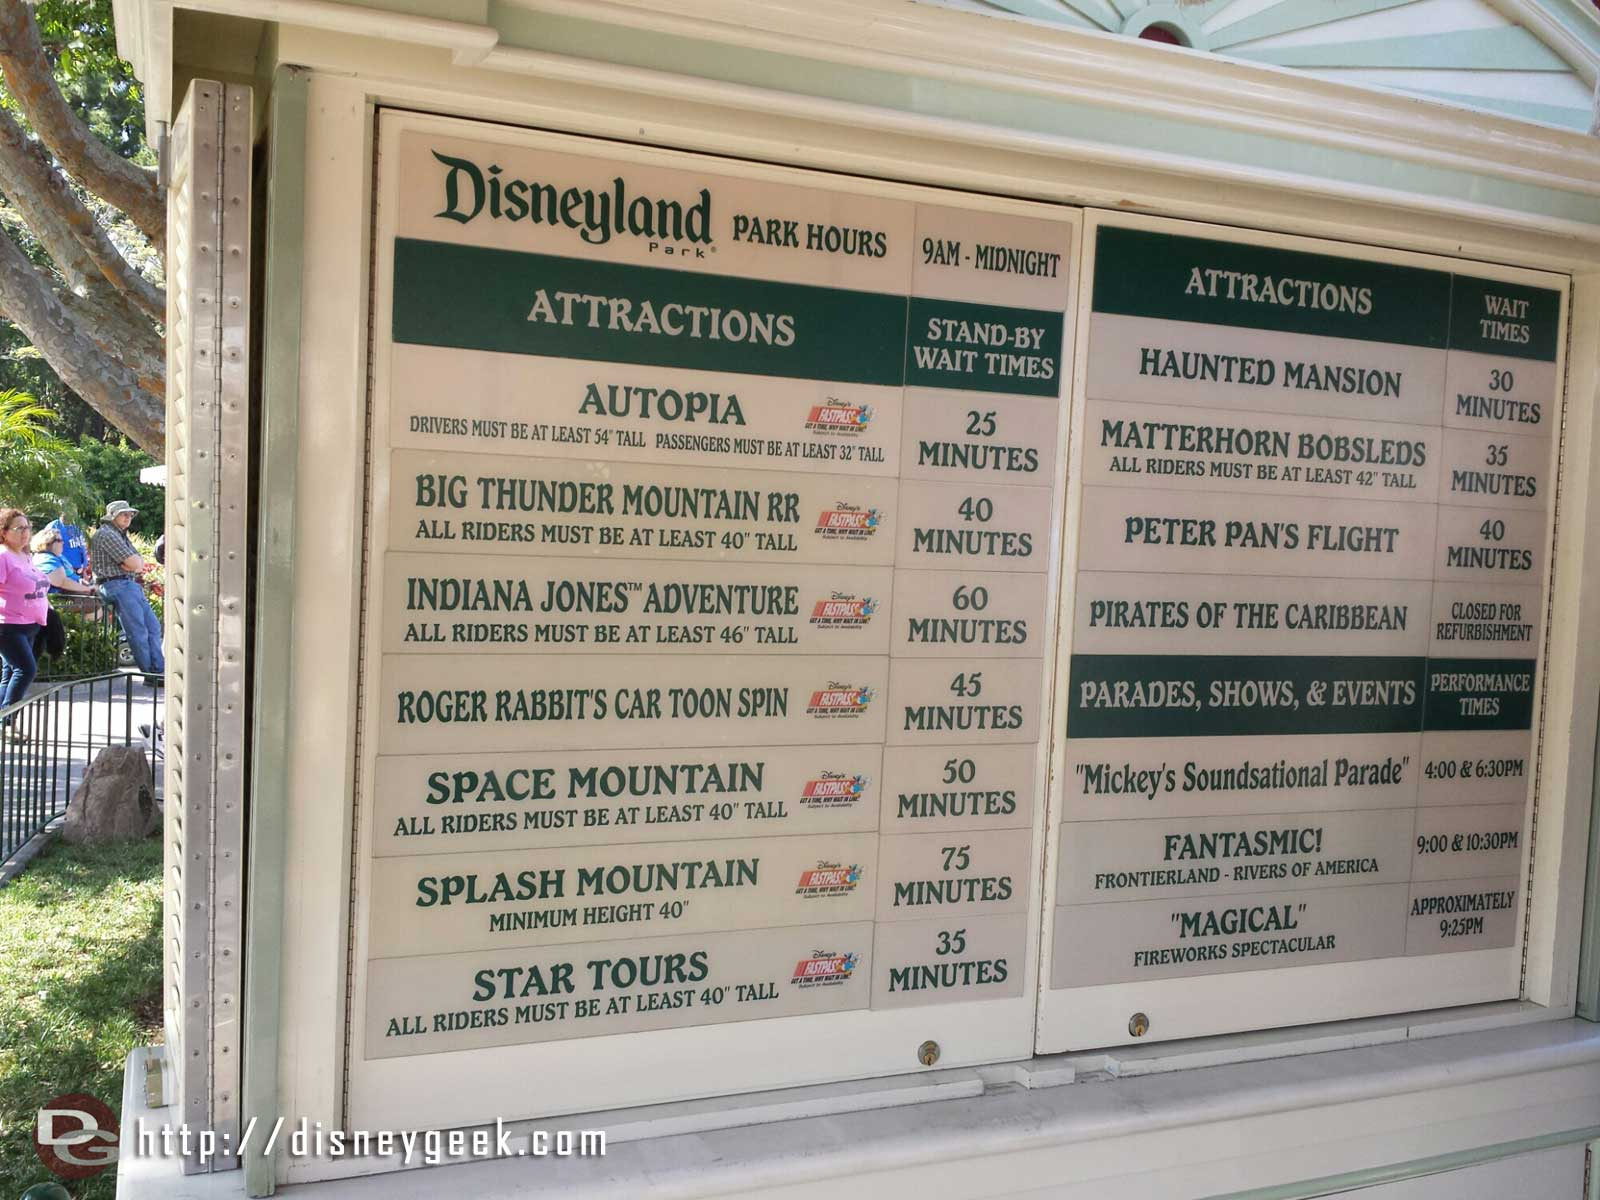 #Disneyland wait times around 4:15pm